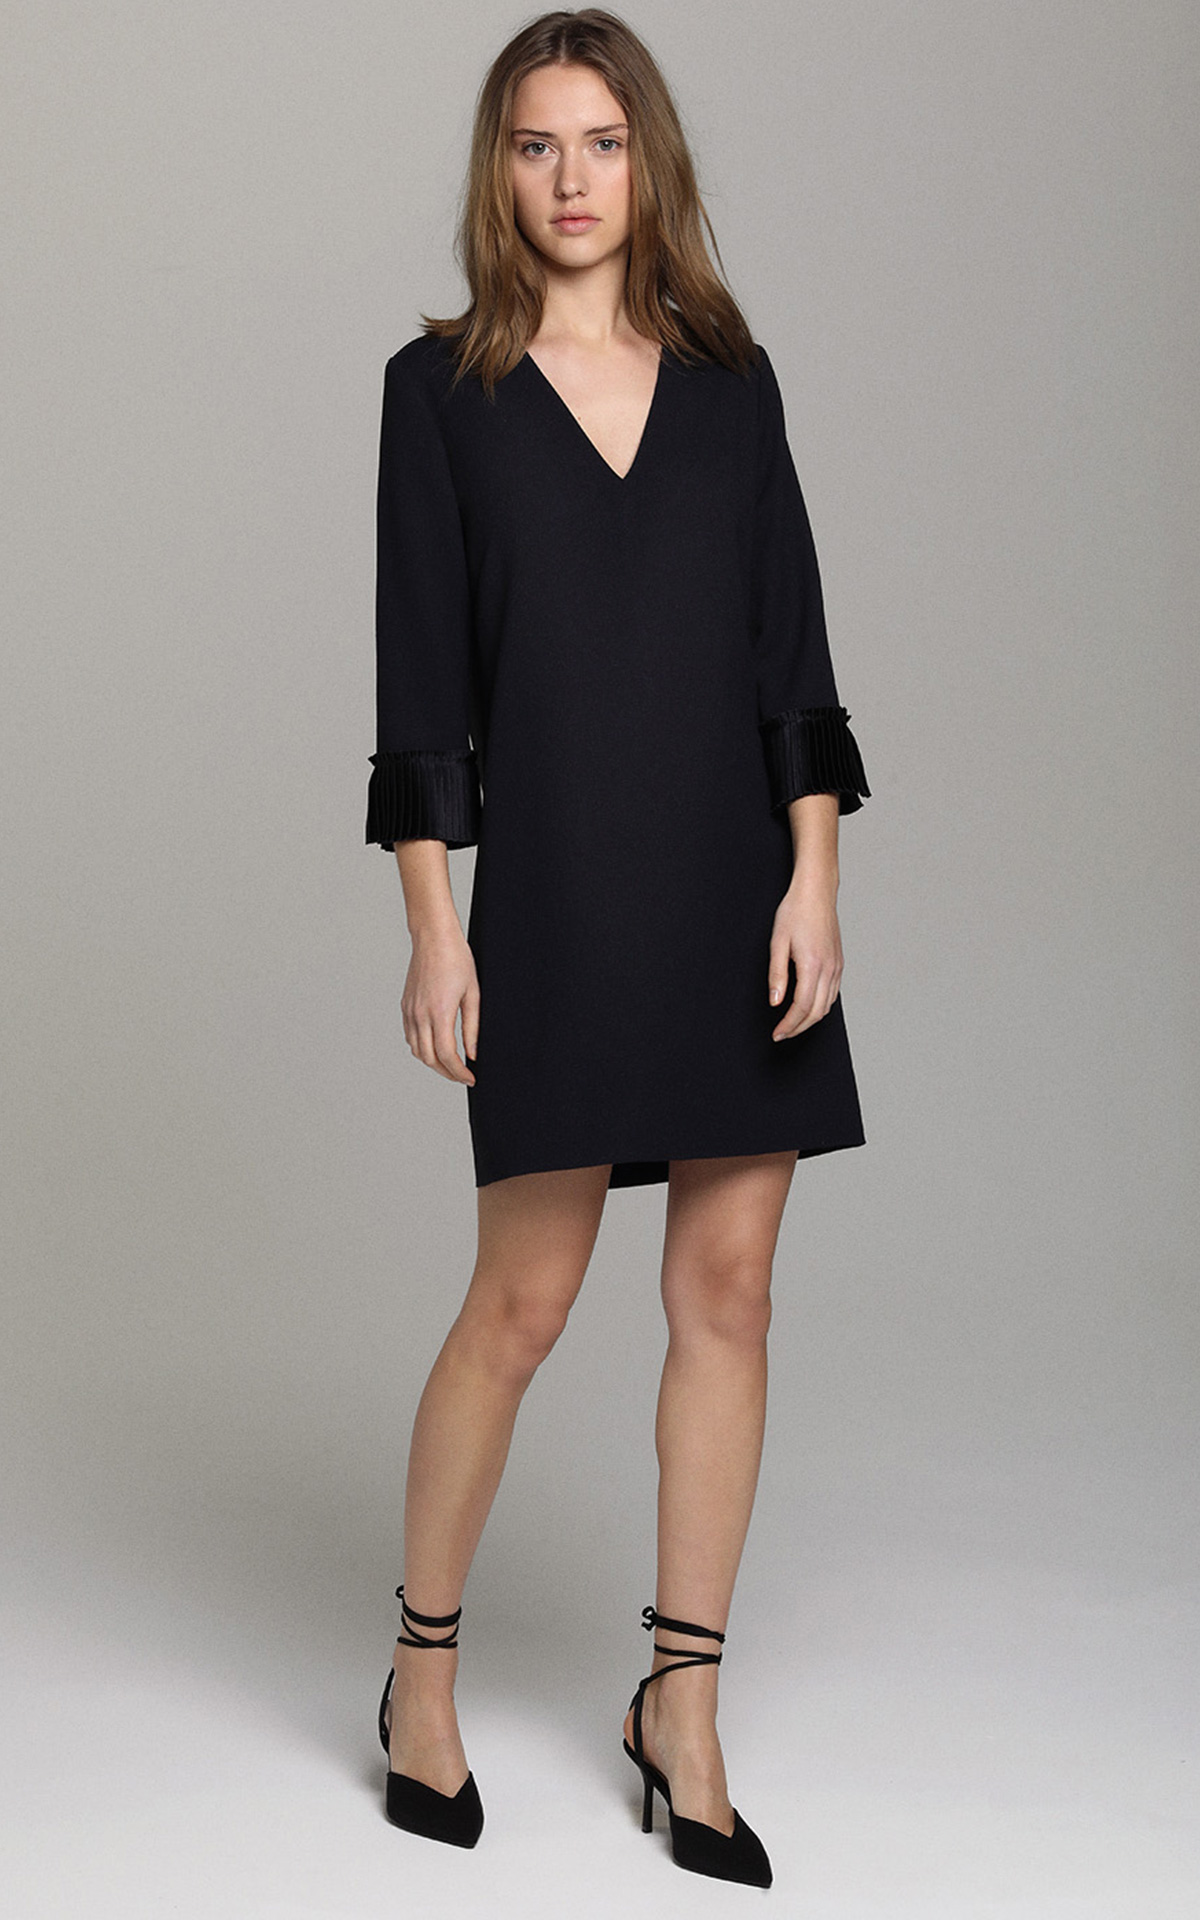 La Vallée Village Apostrophe satin dress